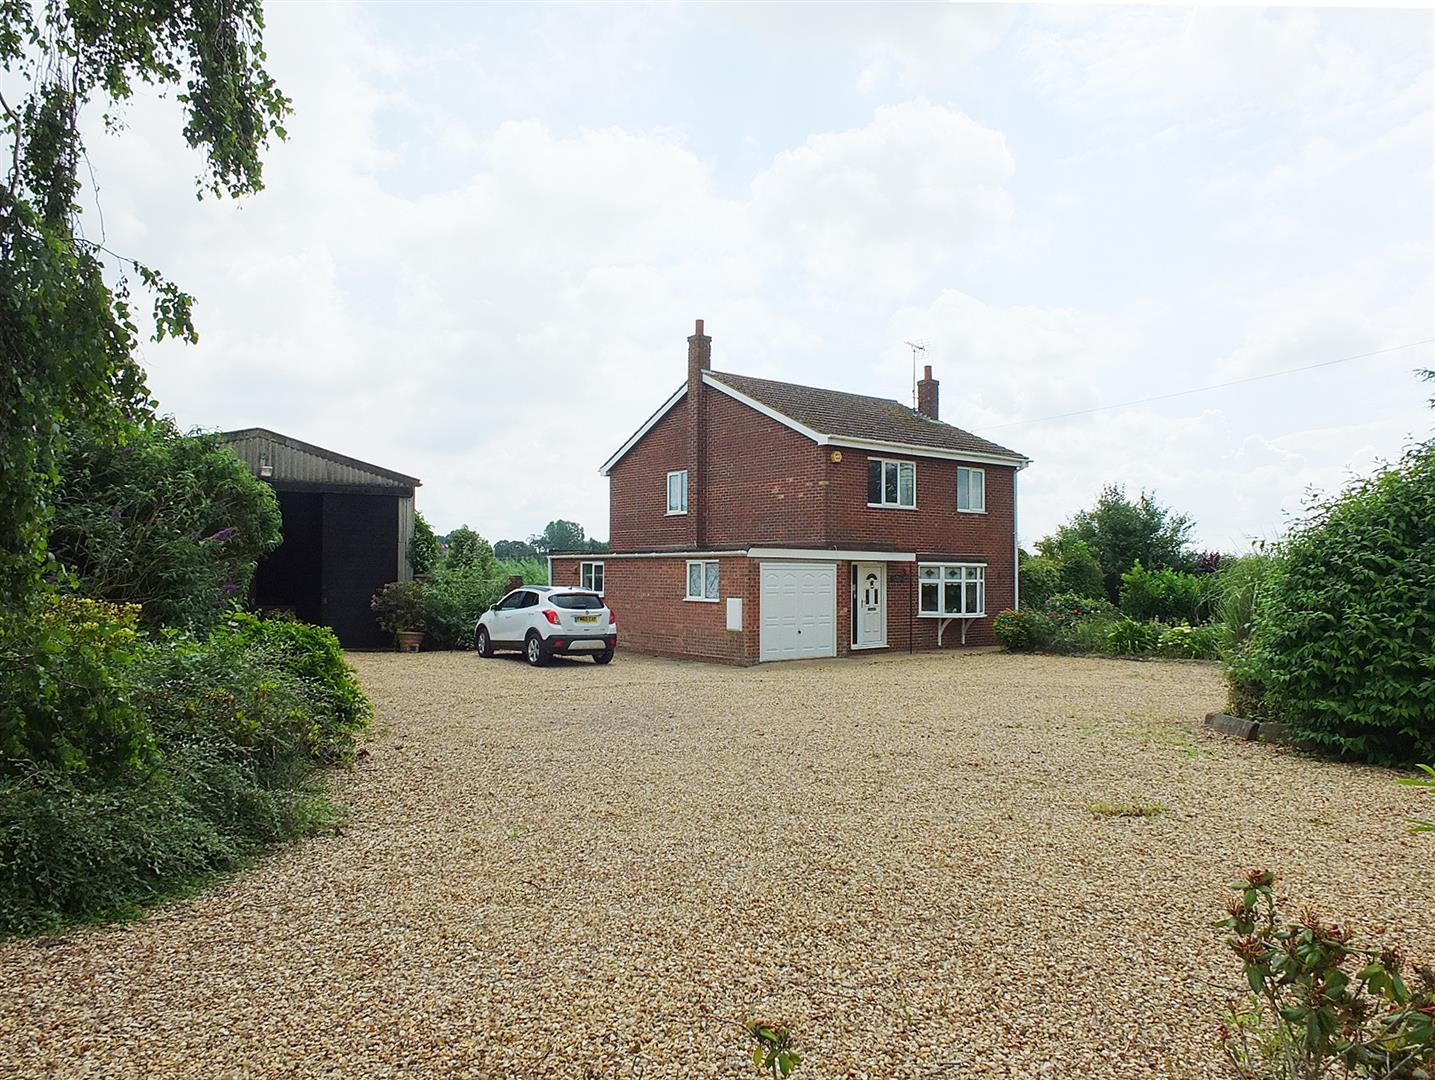 3 bed detached house for sale in Lutton Gowts, Lutton Spalding - Property Image 1